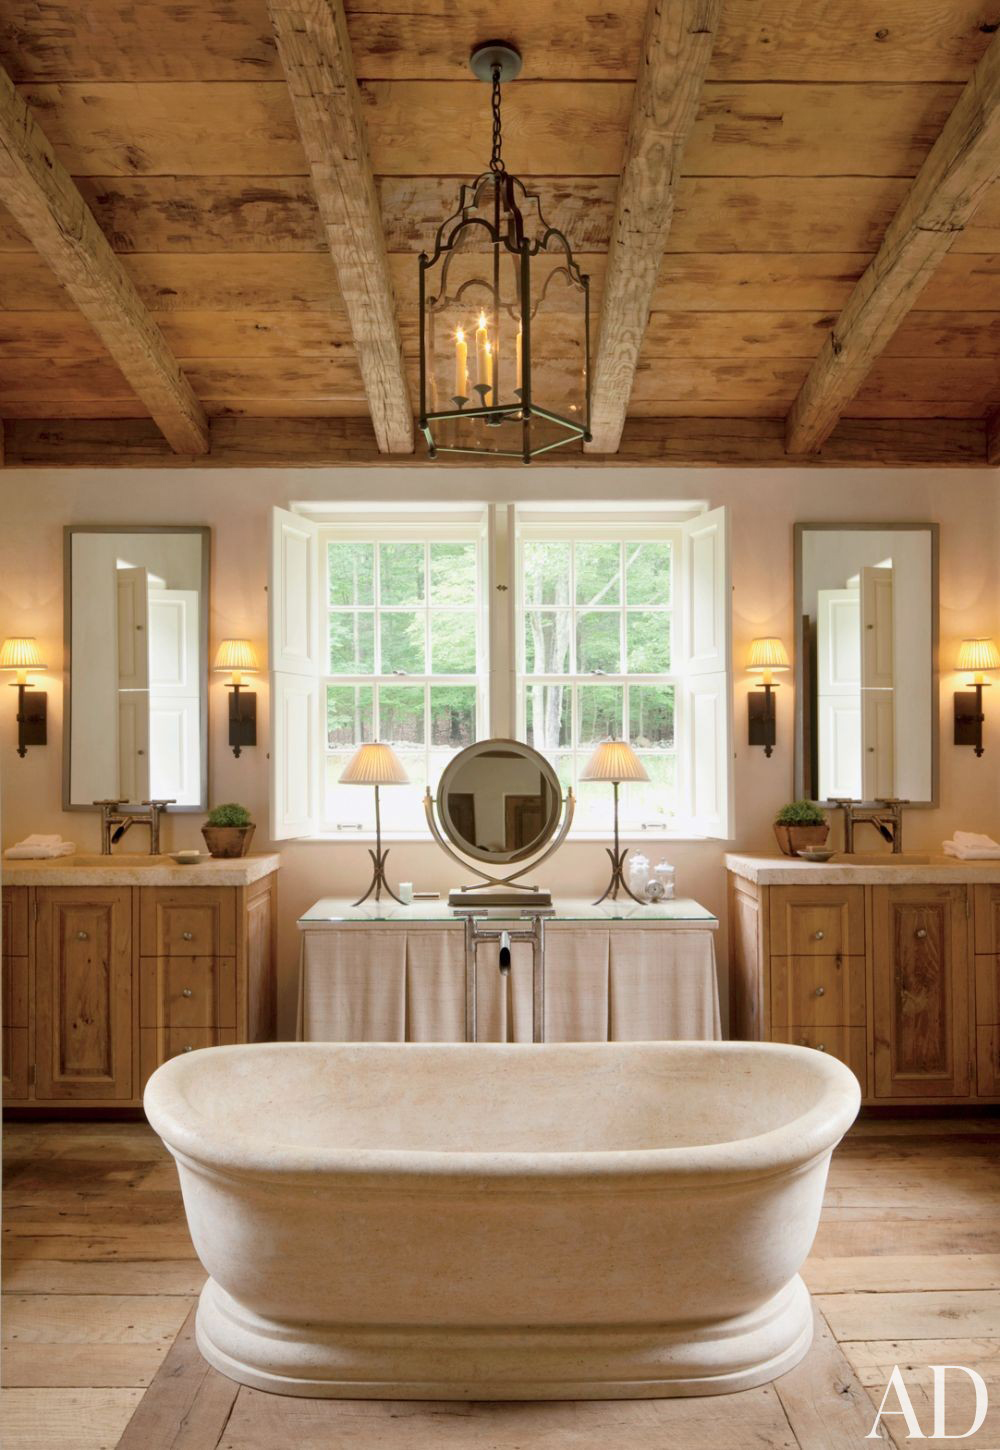 Modern rustic bathroom design - Rustic Modern Bathroom Designs John Cottrell Co G P Schafer Architect Via Architectural Digest